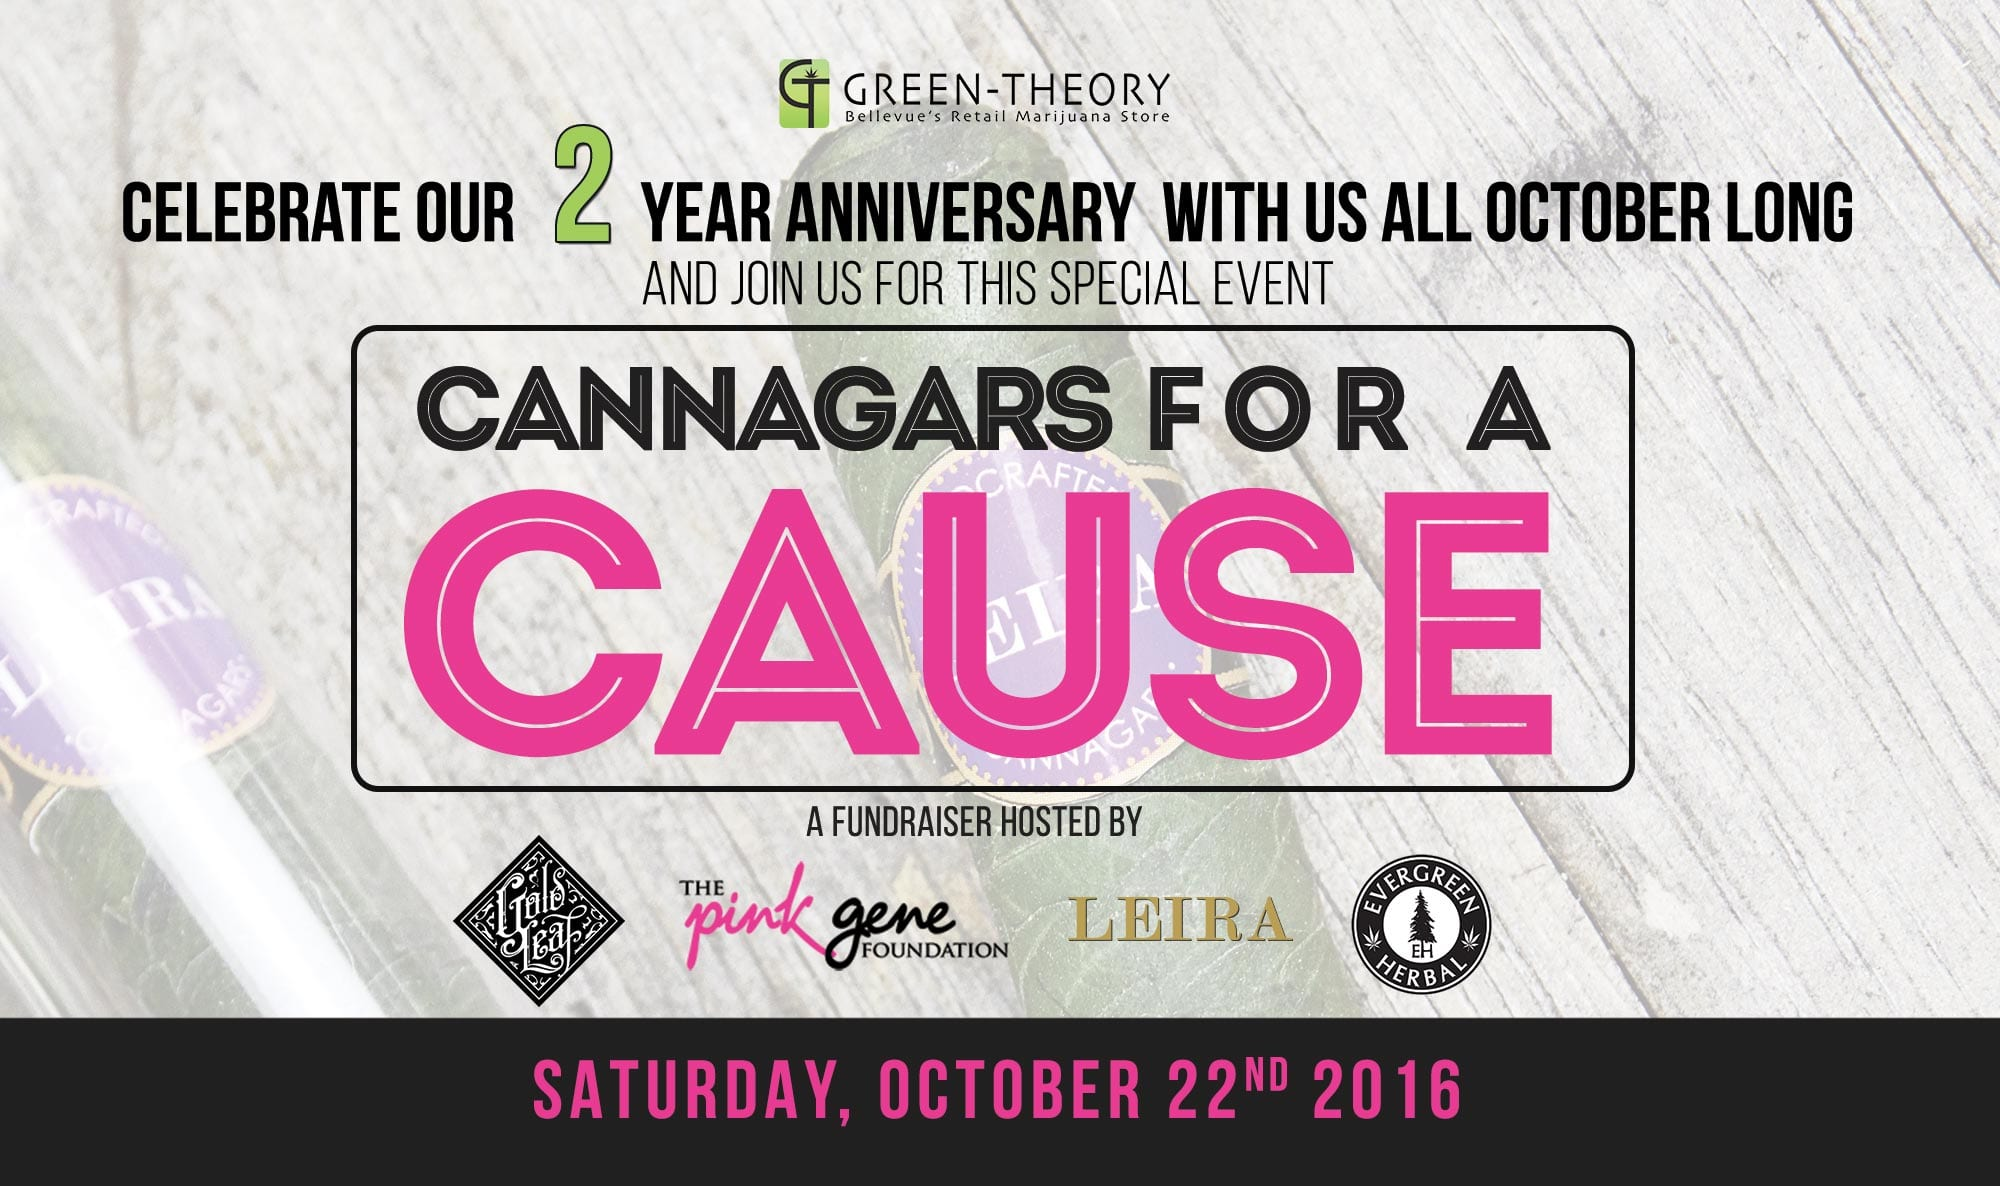 Cannagar Fundraiser from Green-Theory helping raise for a great cause